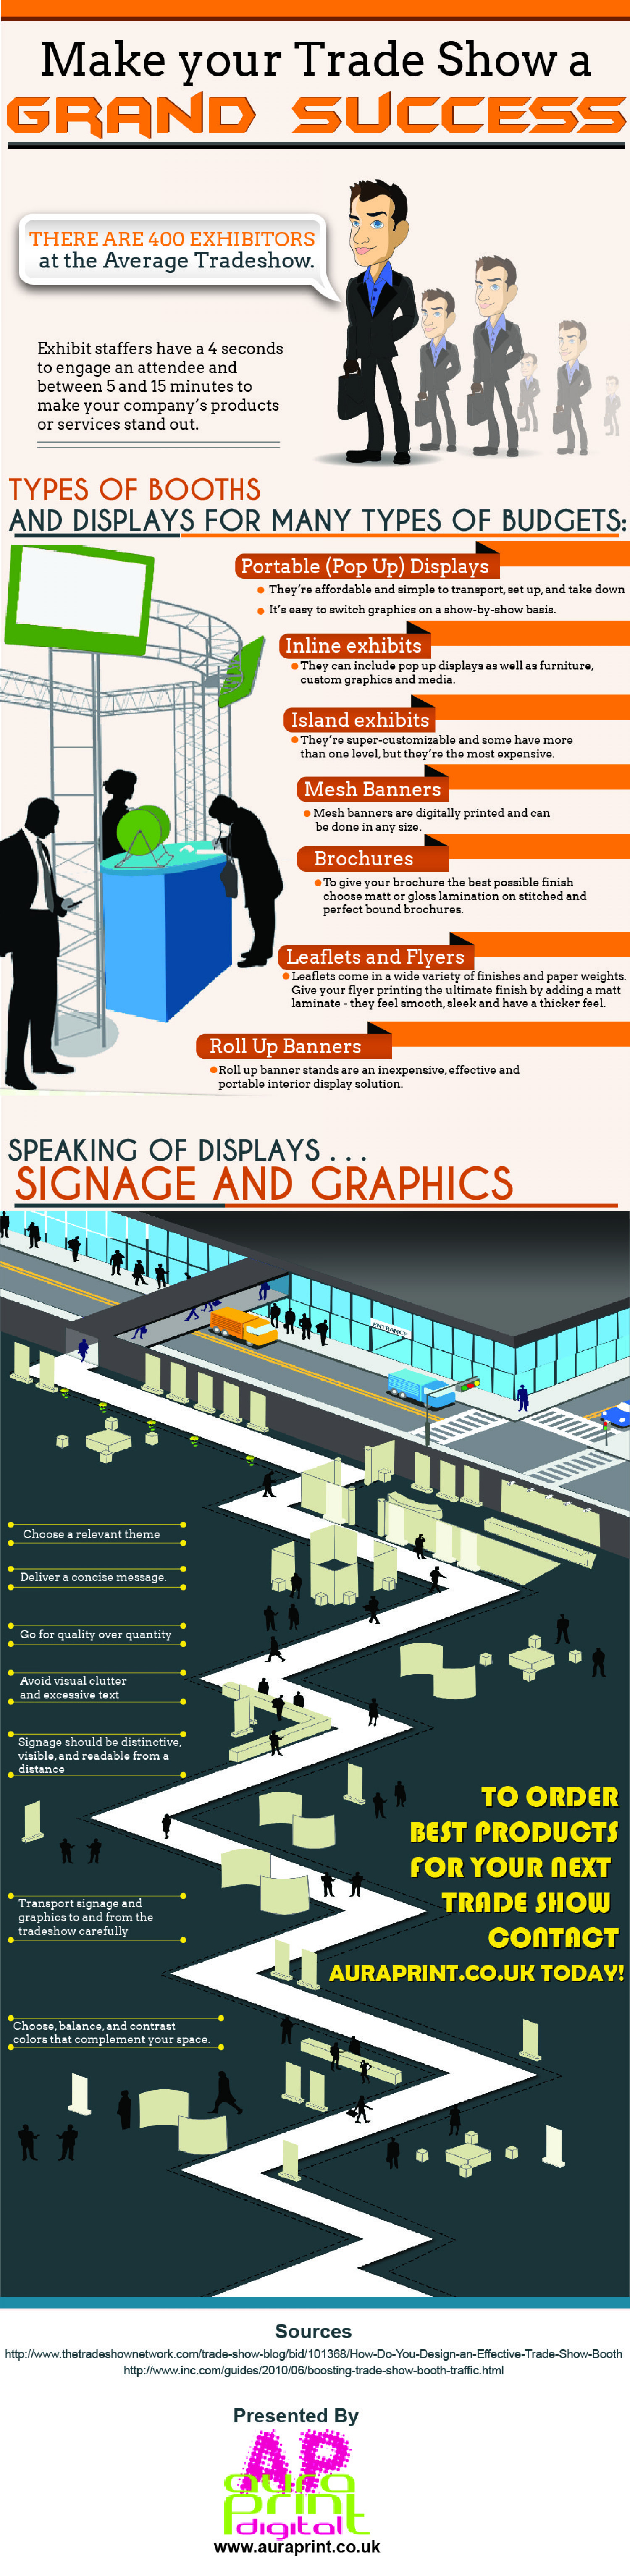 Make your Trade Show a Grand Success Infographic